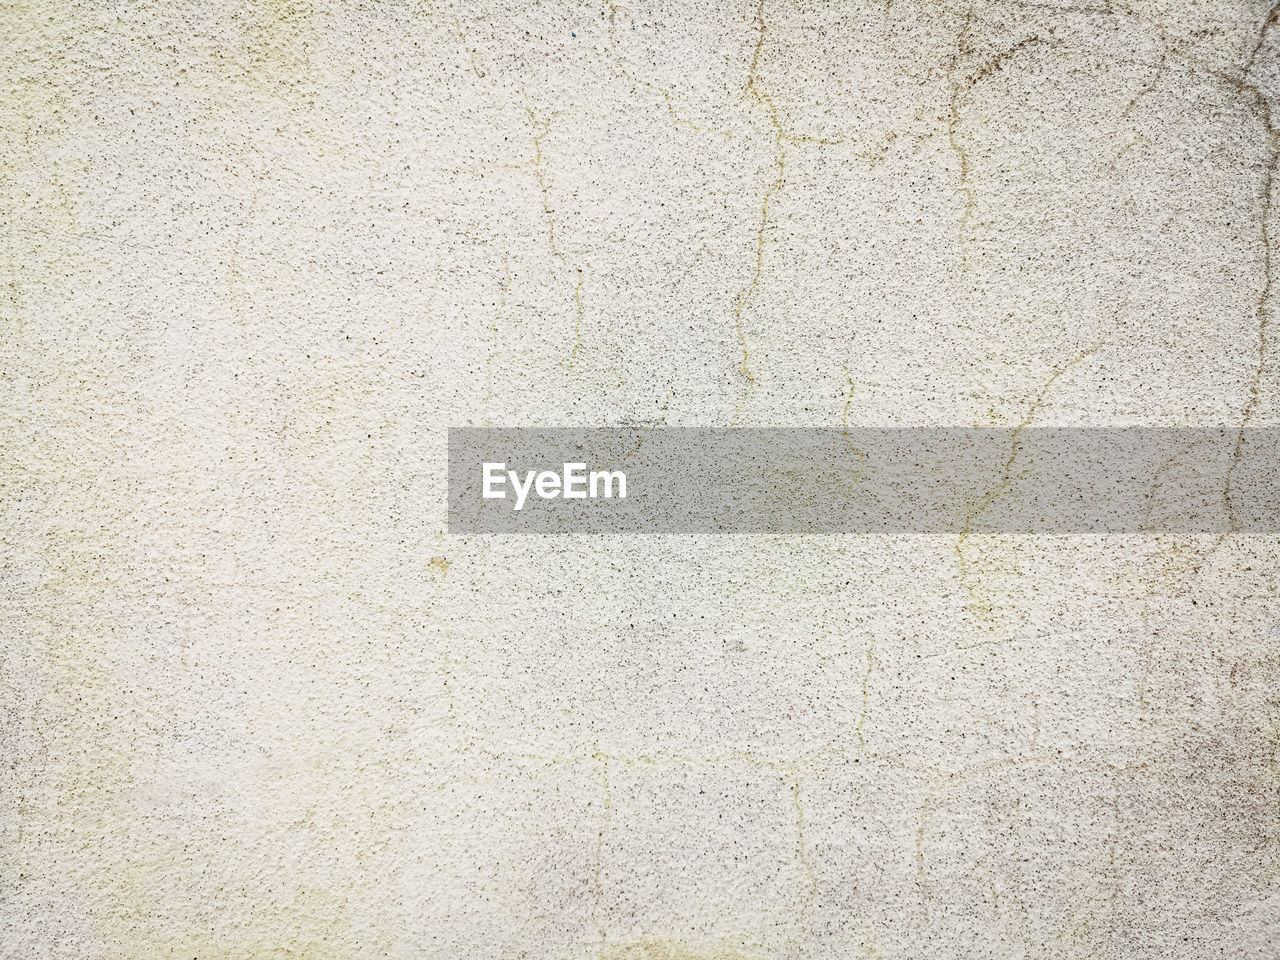 textured, backgrounds, wall - building feature, stone material, full frame, pattern, architecture, built structure, gray, marble, solid, abstract, no people, copy space, flooring, stone - object, textured effect, concrete, white color, construction material, cement, stone wall, surface level, outdoors, abstract backgrounds, blank